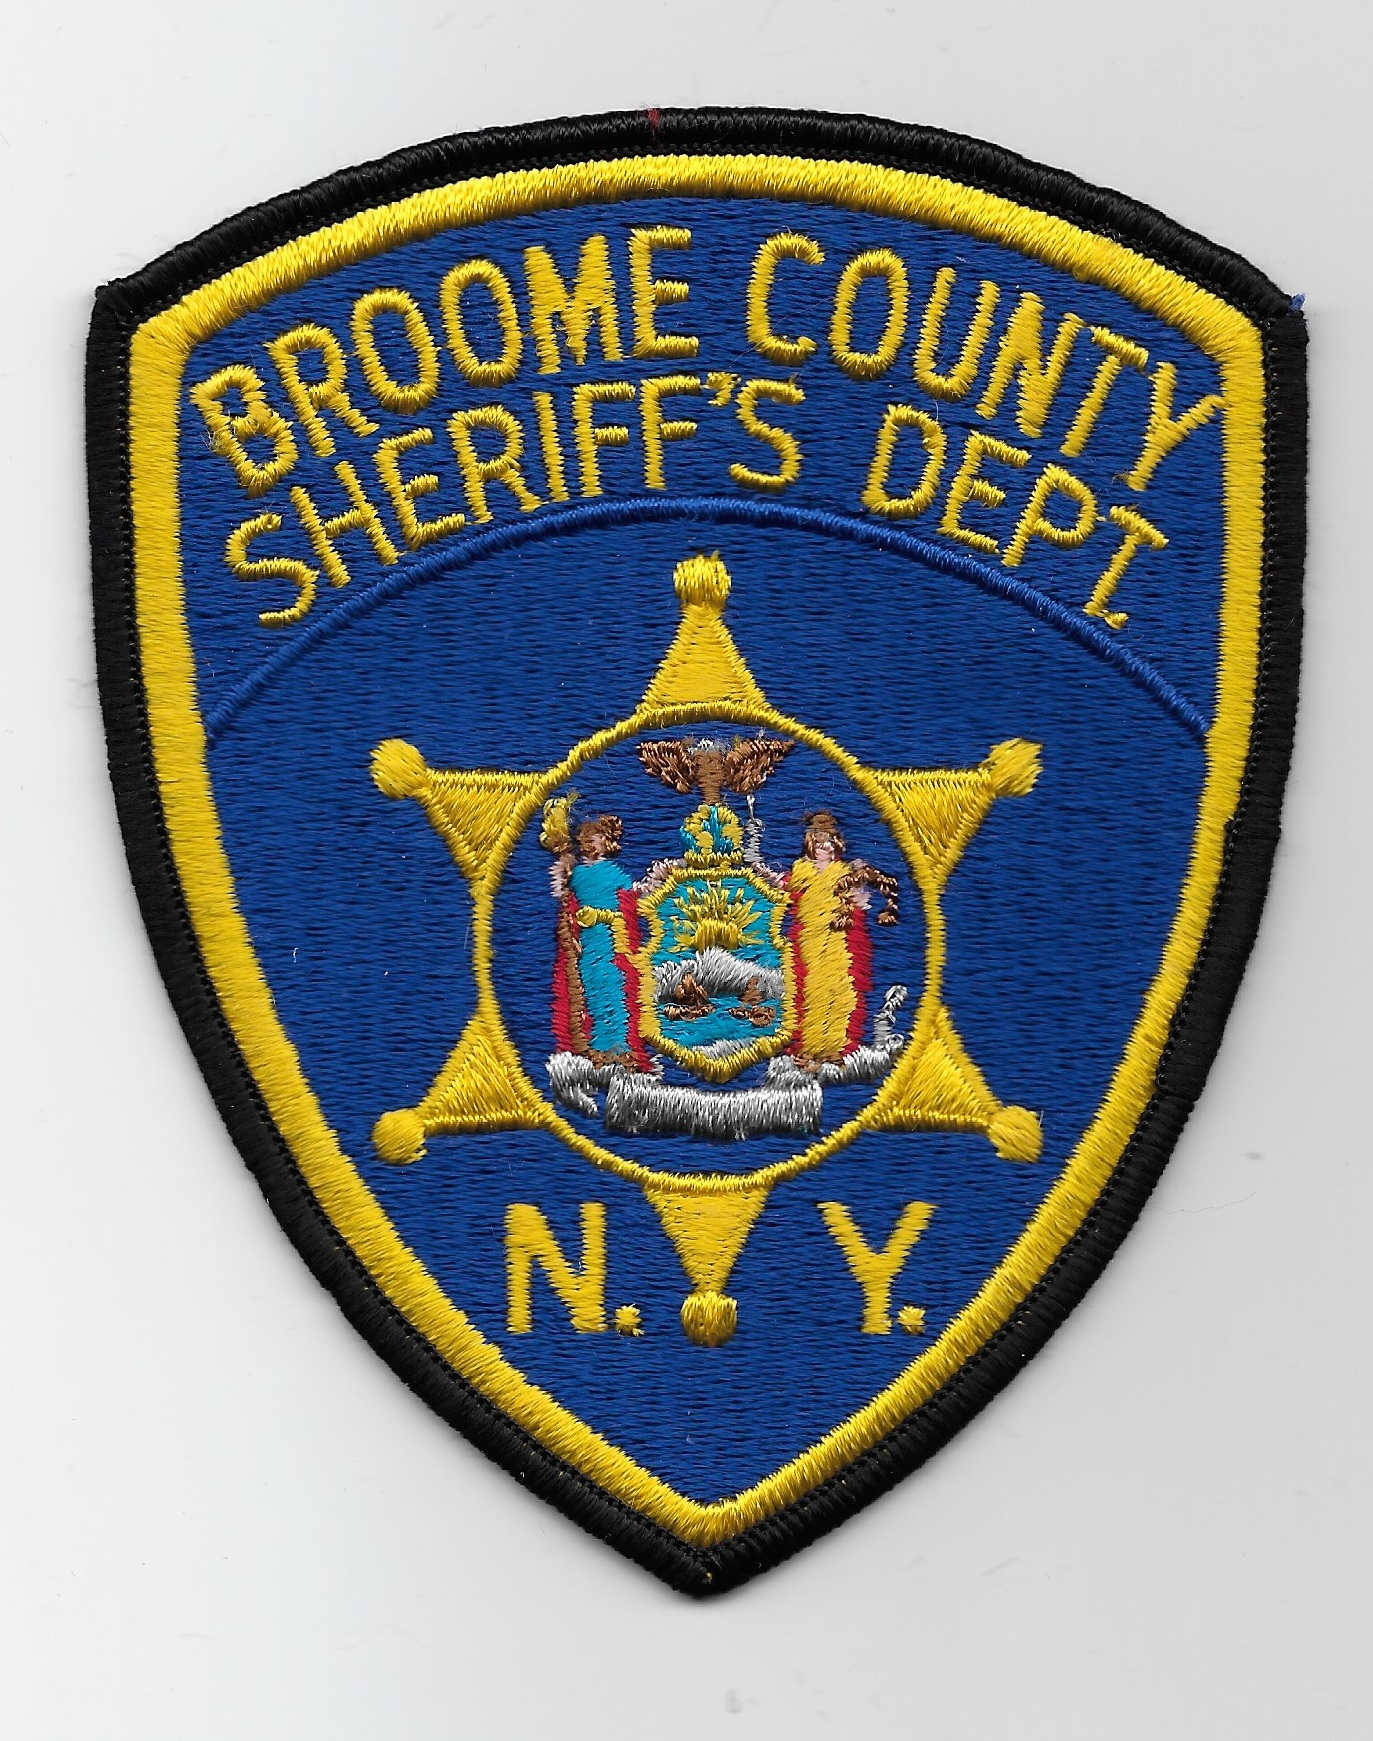 Broome County Sheriff NY Blue